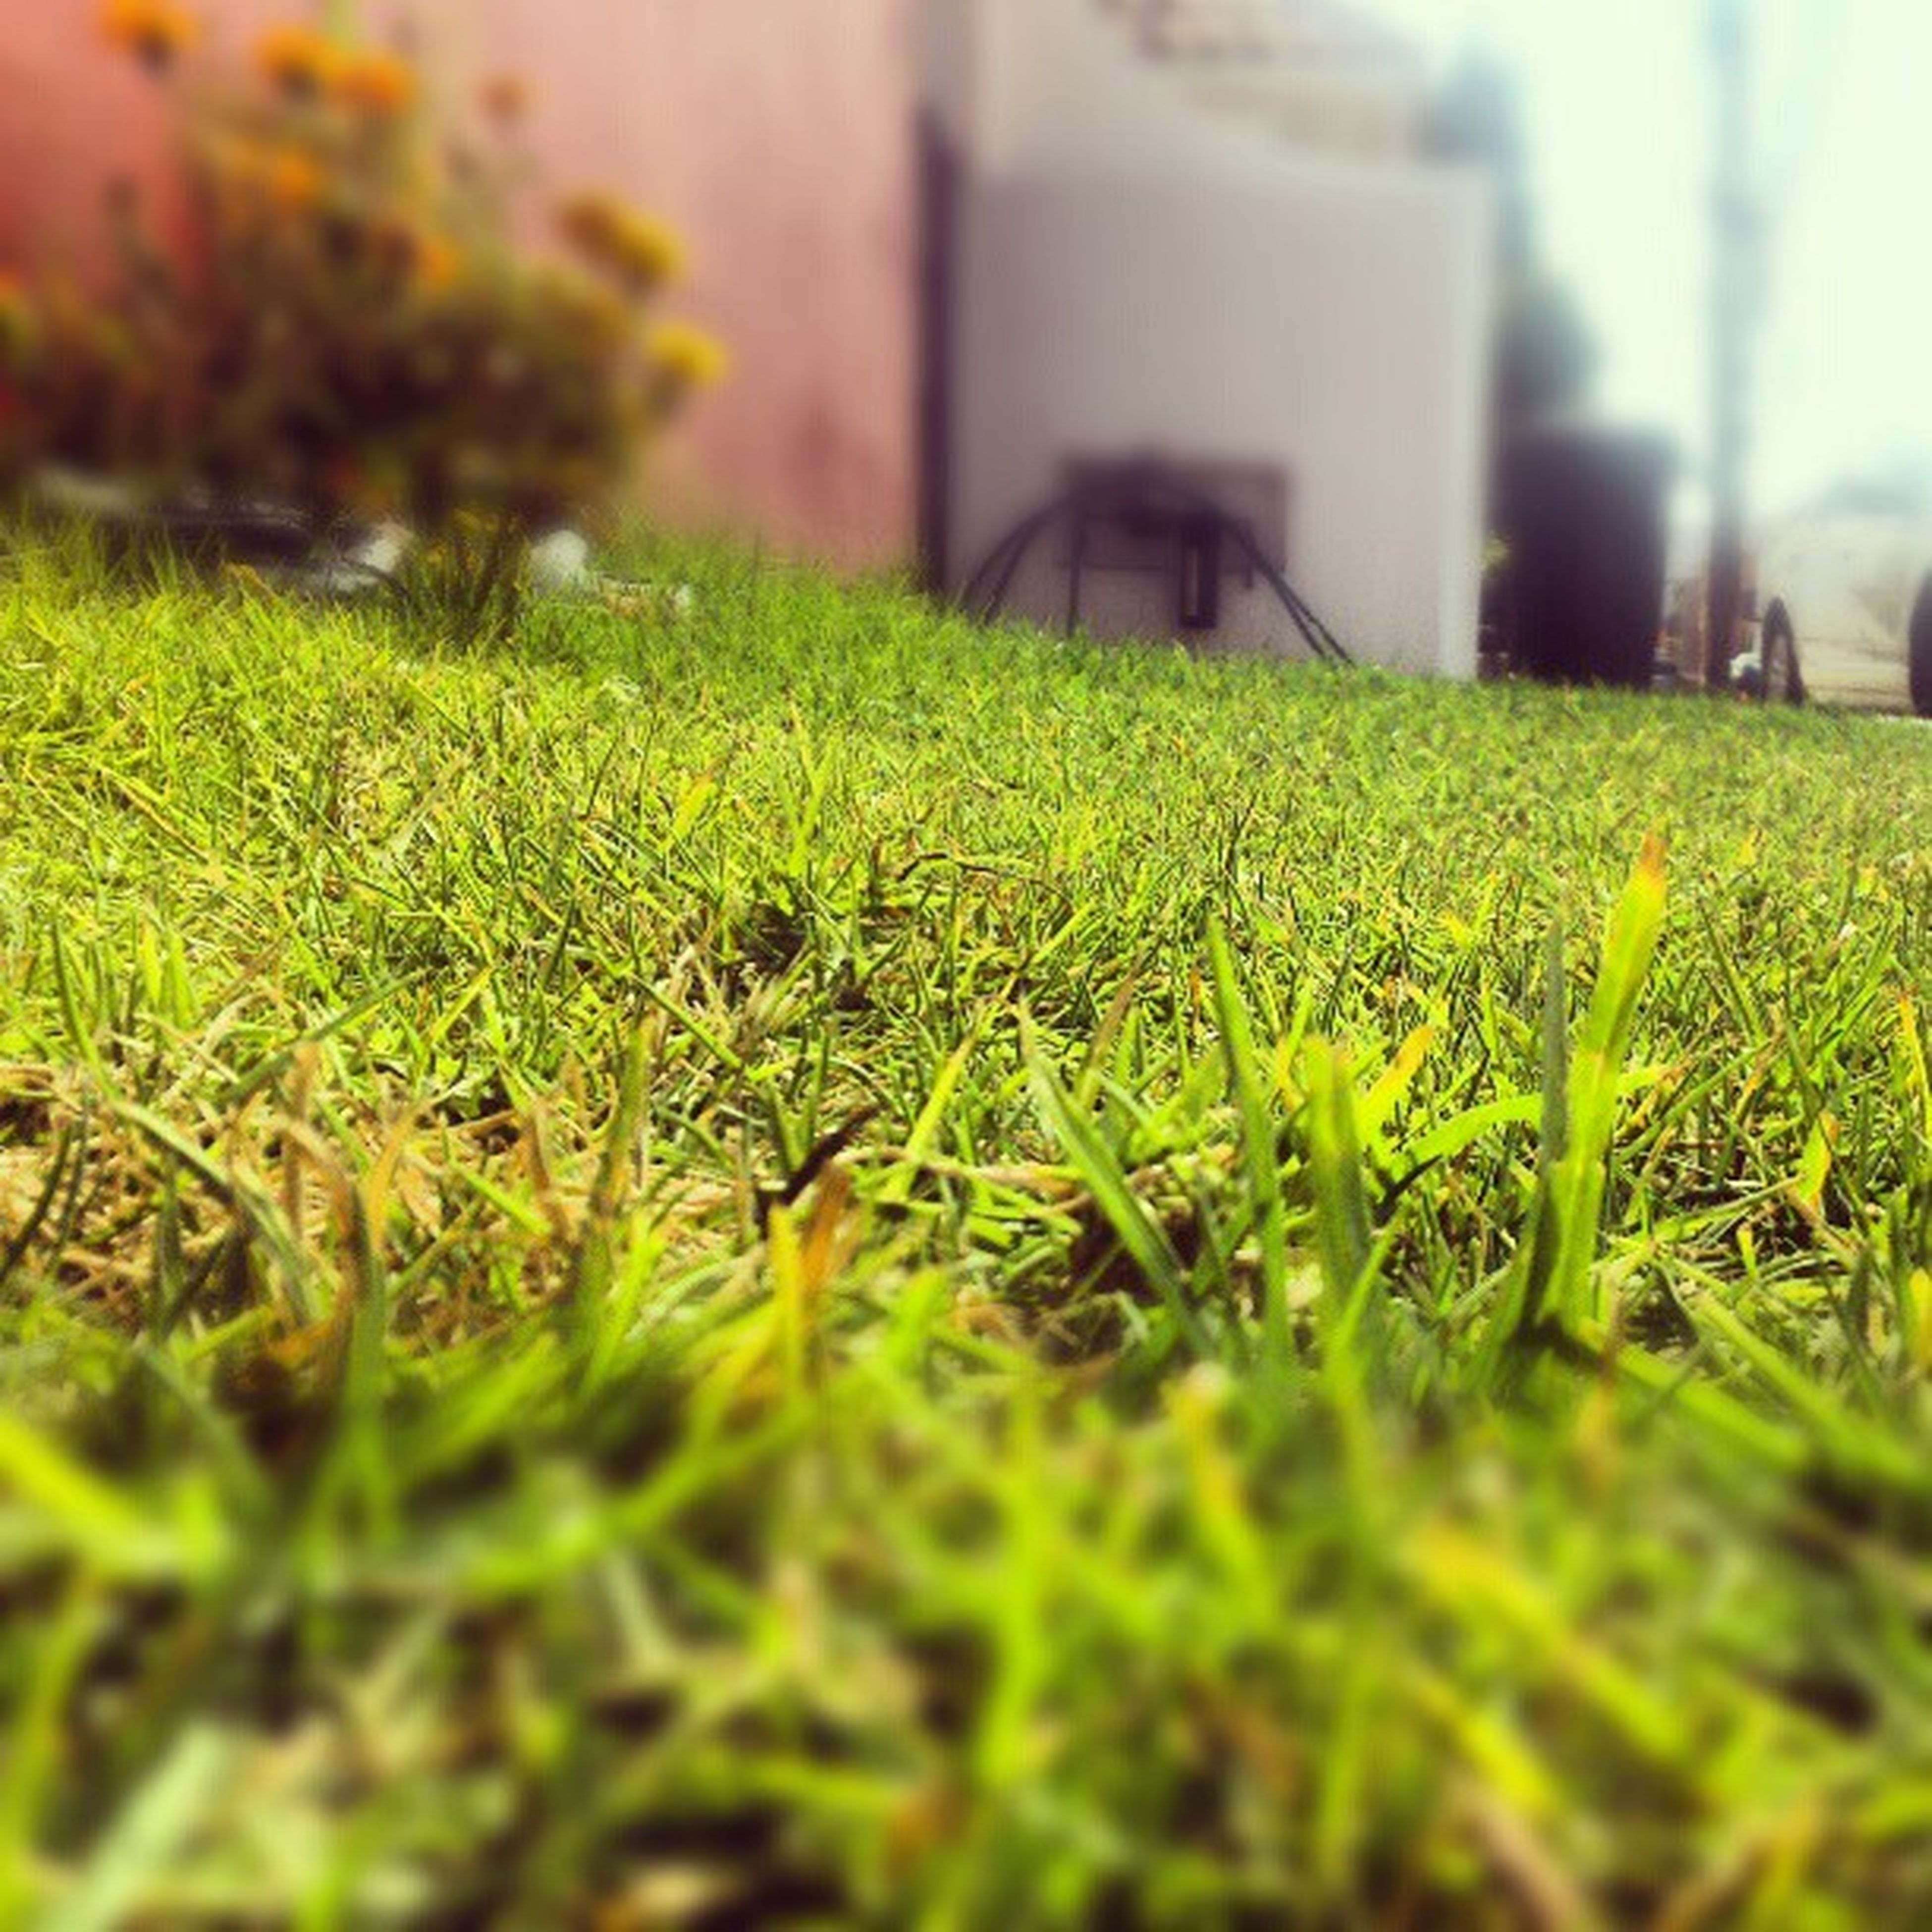 grass, field, growth, green color, selective focus, grassy, plant, surface level, nature, focus on foreground, beauty in nature, built structure, building exterior, close-up, green, outdoors, day, freshness, growing, tranquility